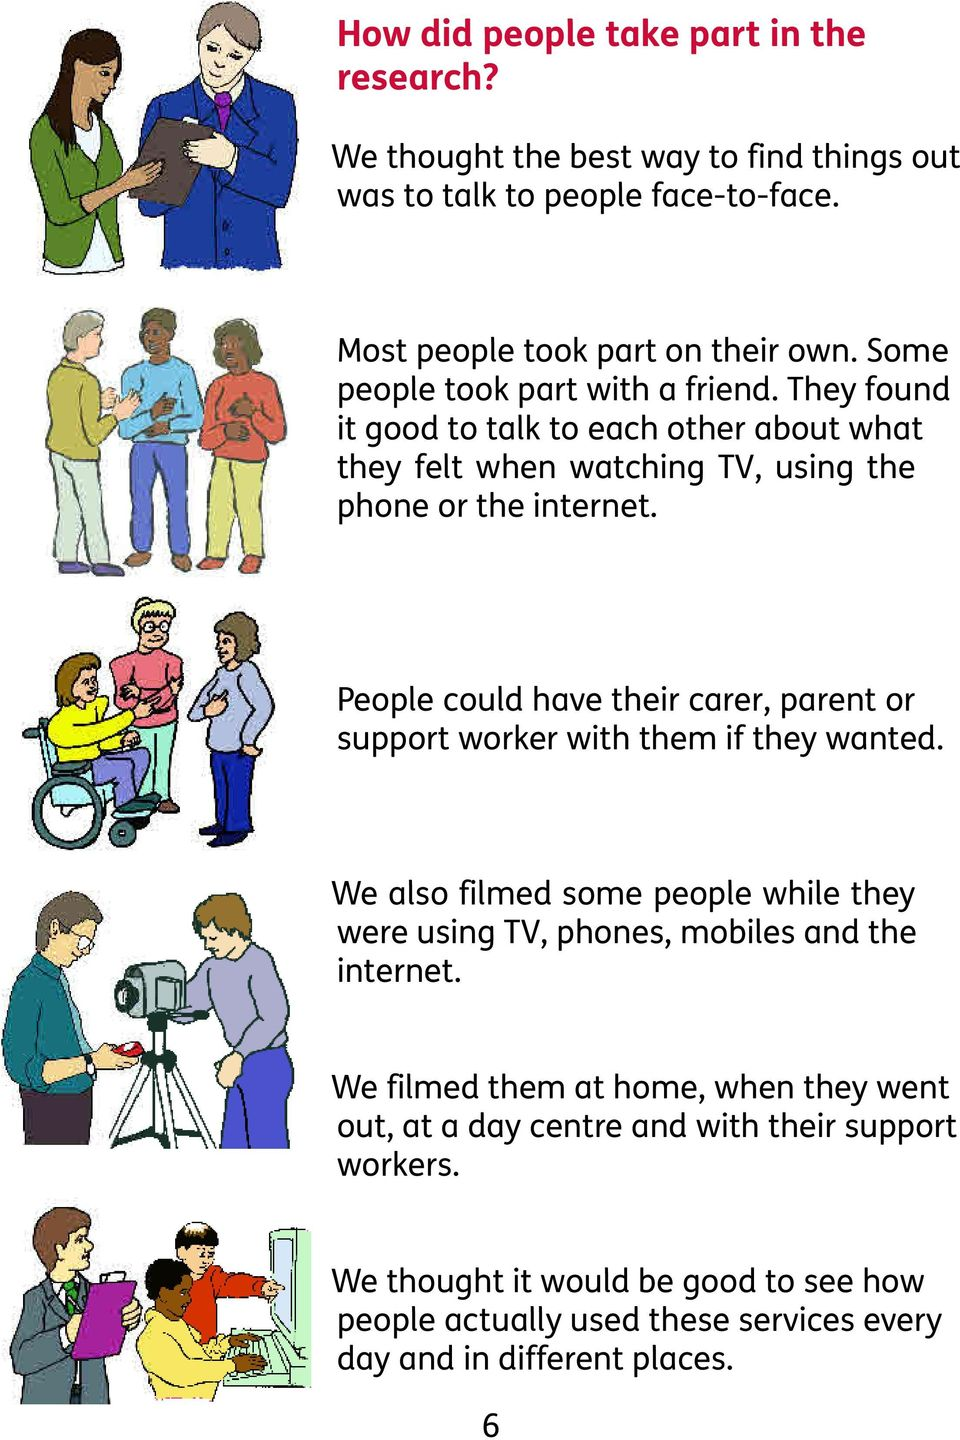 People could have their carer, parent or support worker with them if they wanted. We also filmed some people while they were using TV, phones, mobiles and the internet.